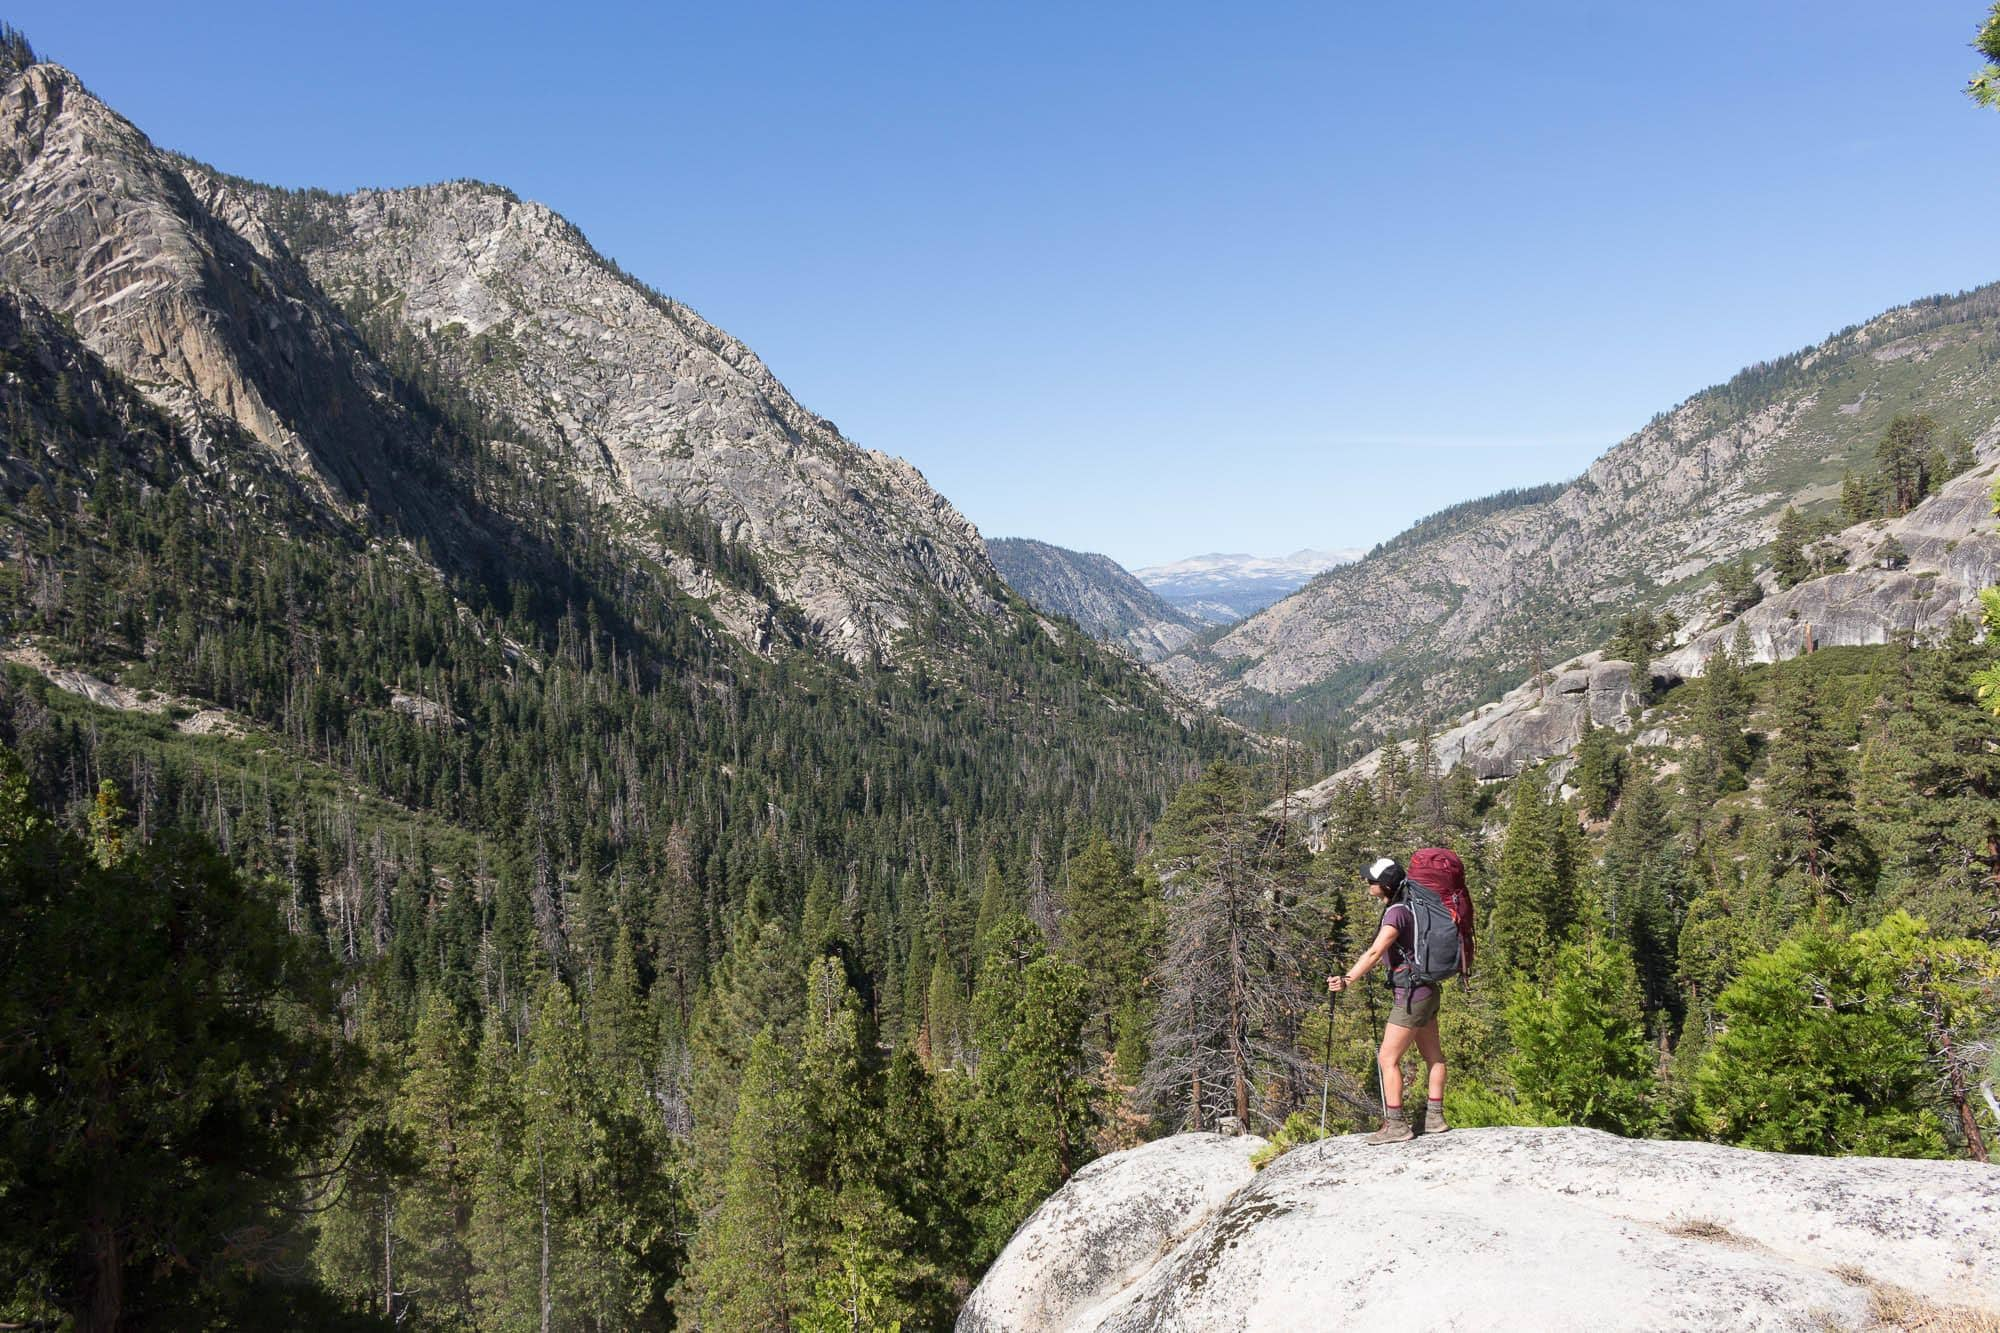 Wilderness Backpacking 101: Beginner's Tips for Planning a Backpacking Trip